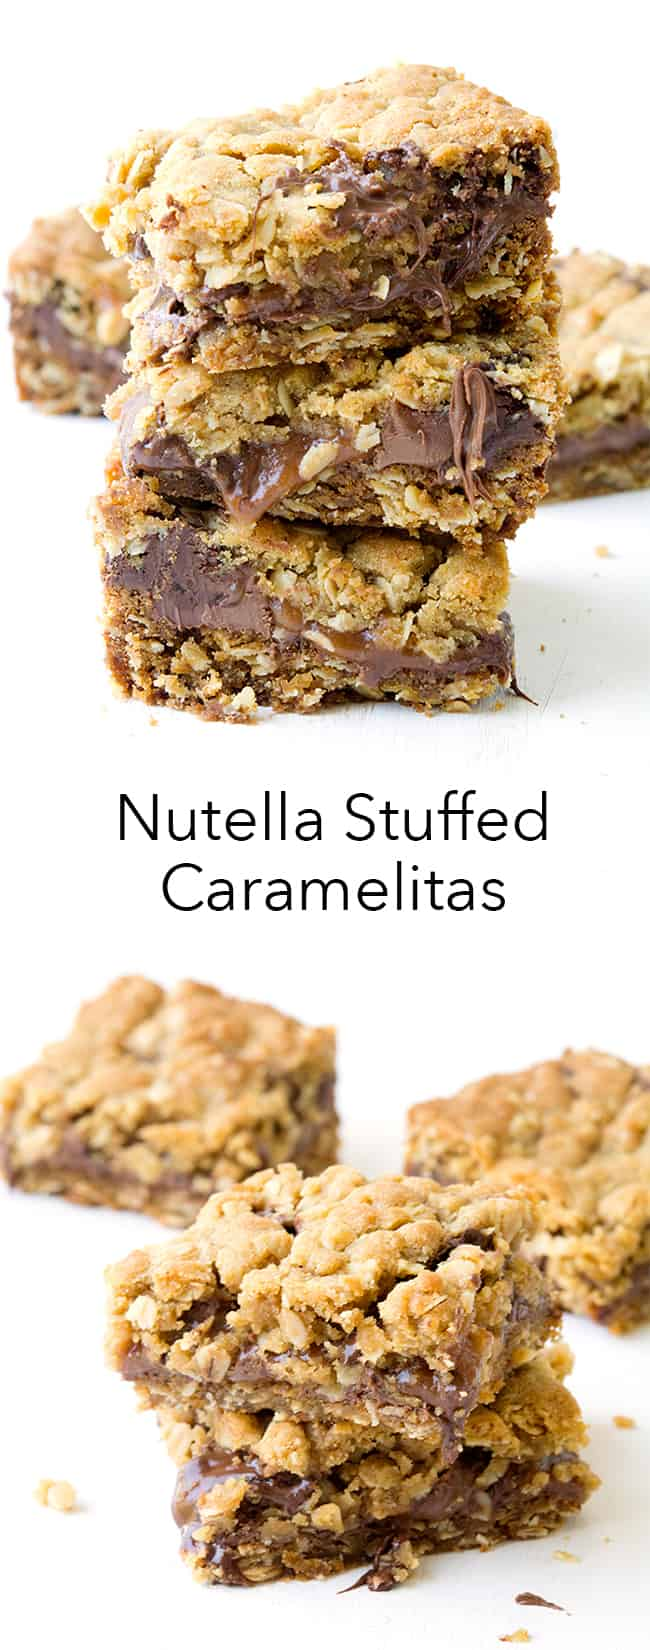 Nutella Stuffed Caramelitas | Sweetest Menu